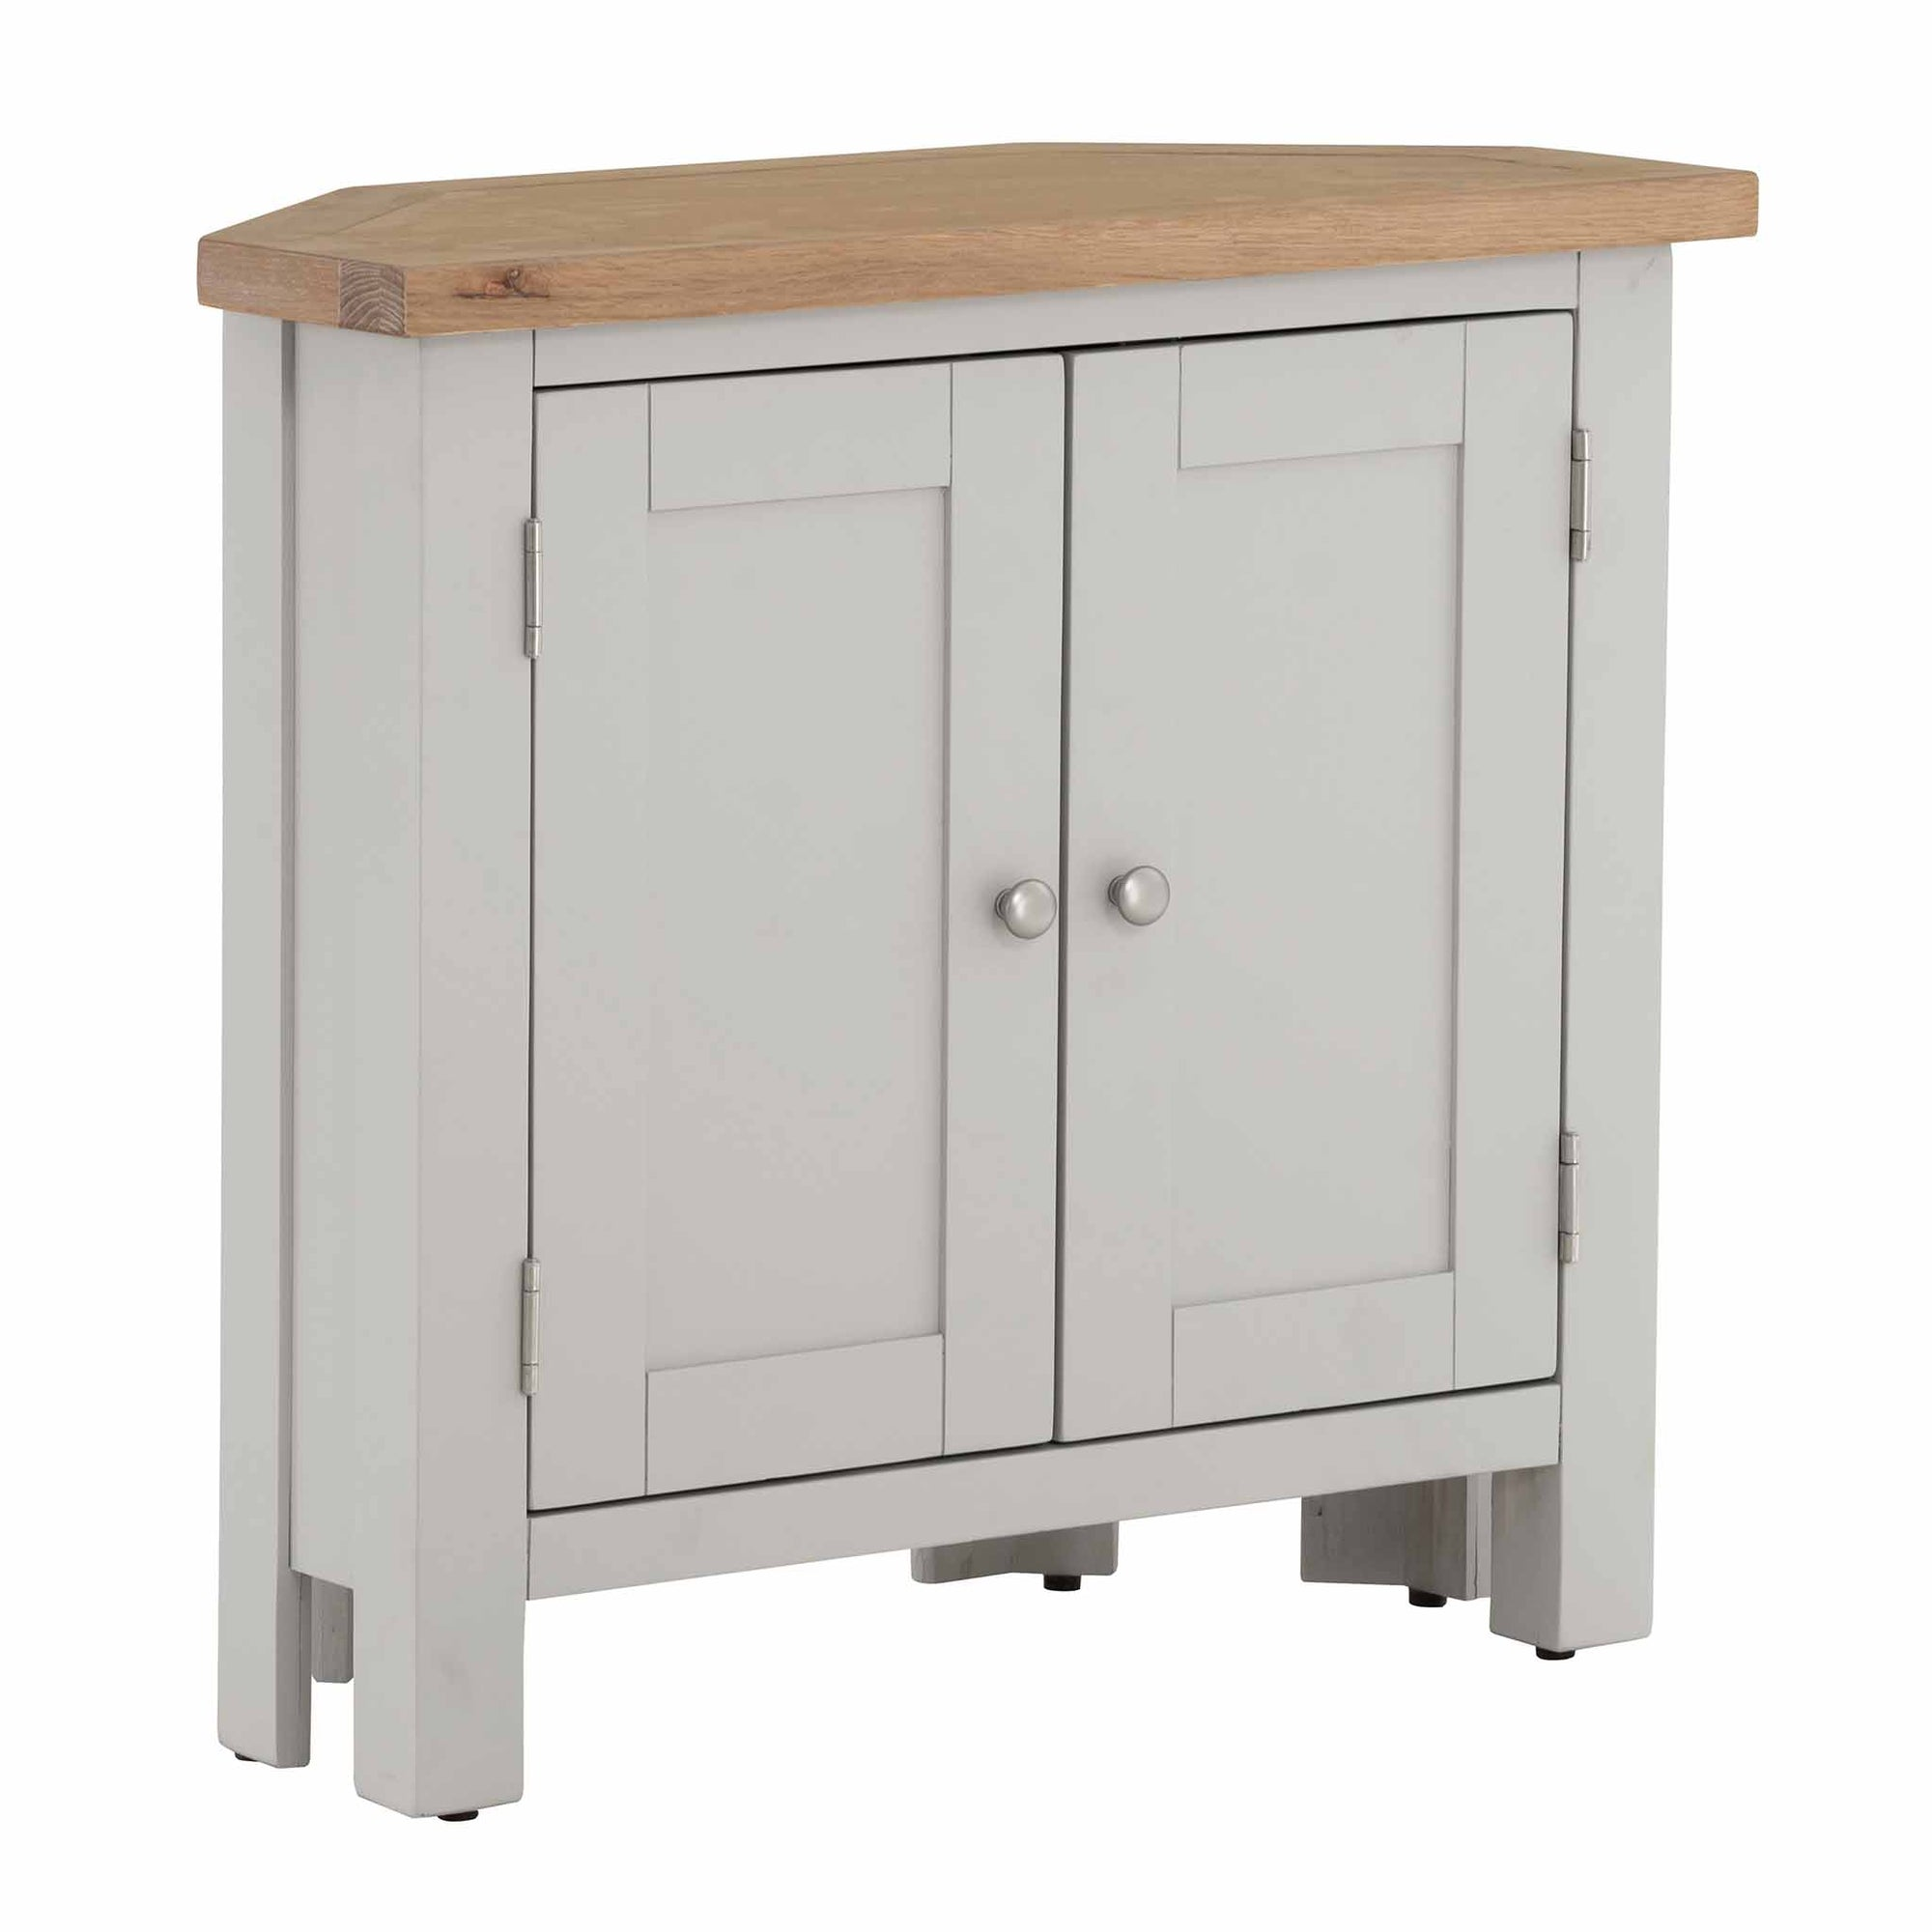 Charlestown Grey Corner Cupboard with Oak Top from Roseland Furniture